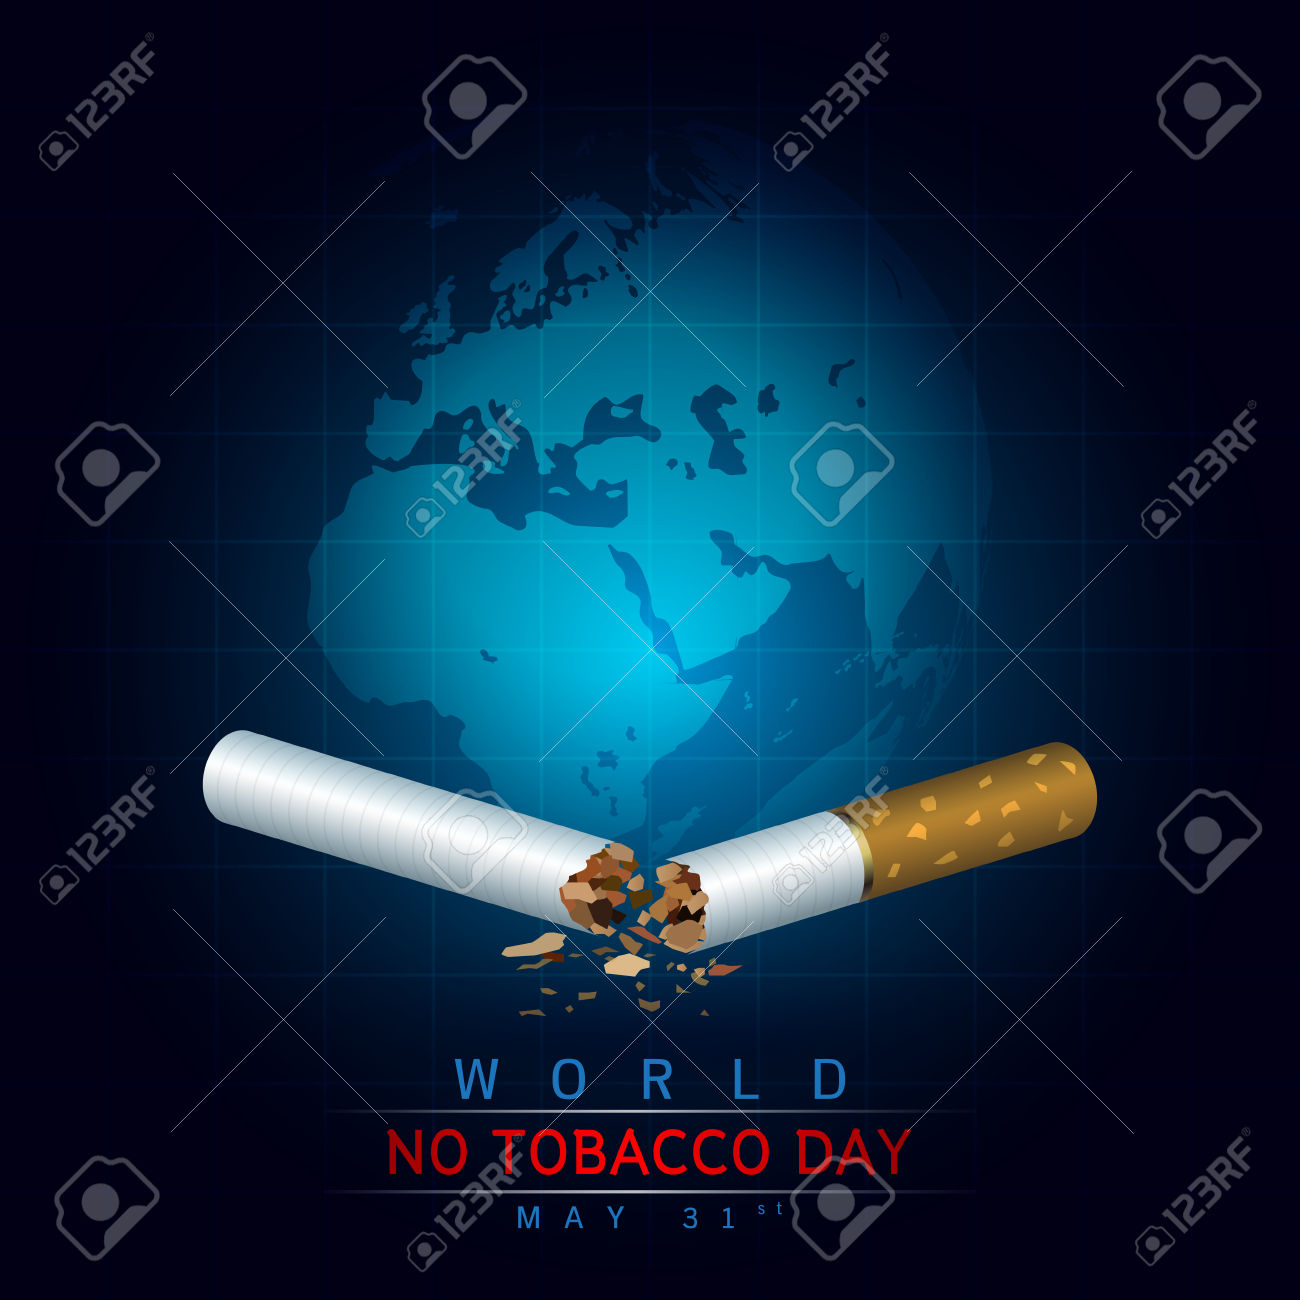 689 Tobacco Day Stock Vector Illustration And Royalty Free Tobacco.